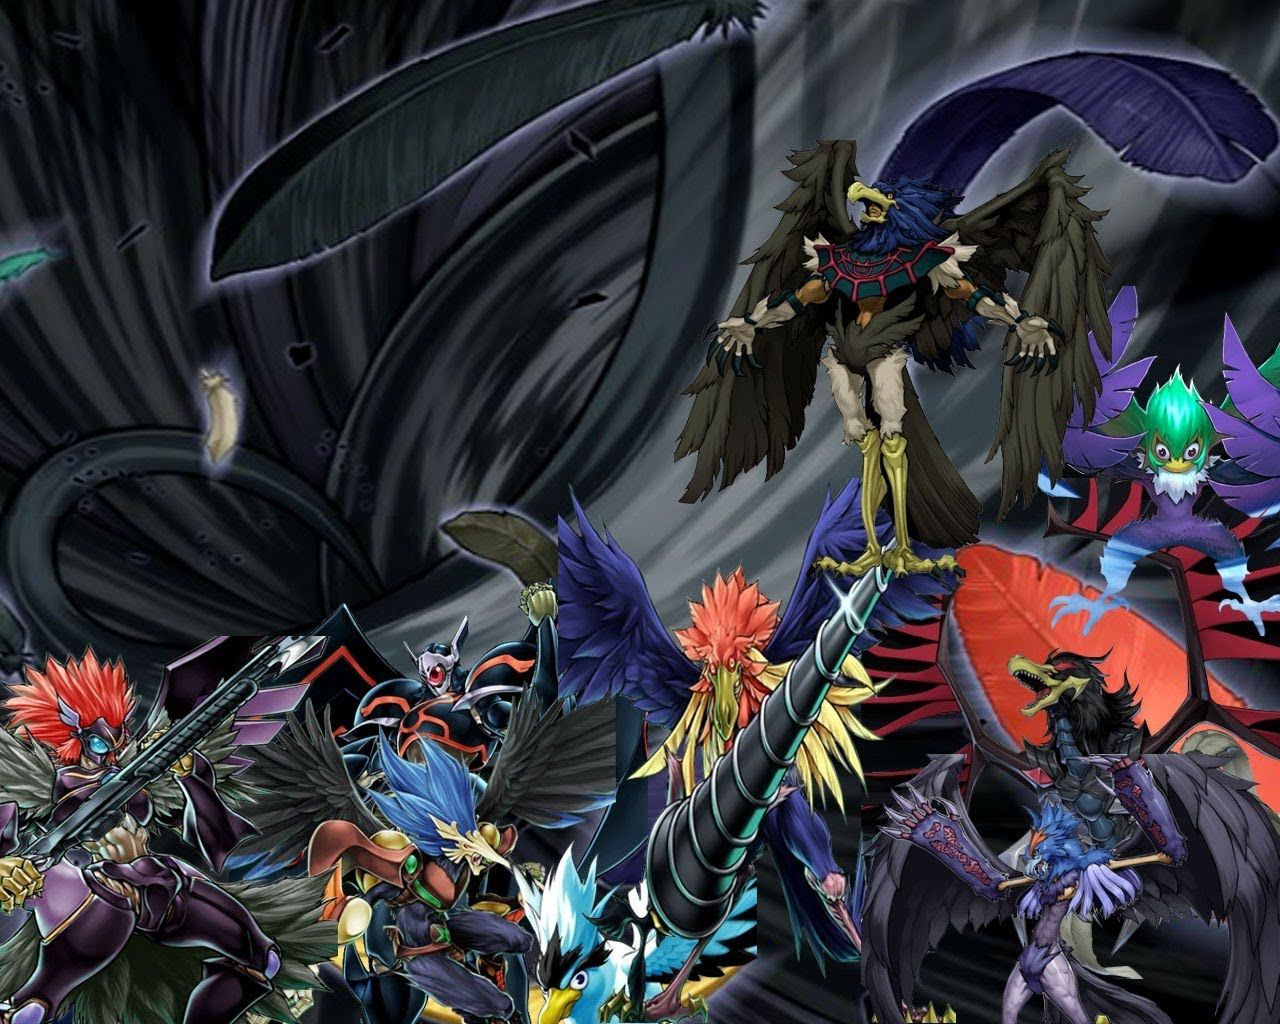 He runs the Blackwings and here they are. Description from